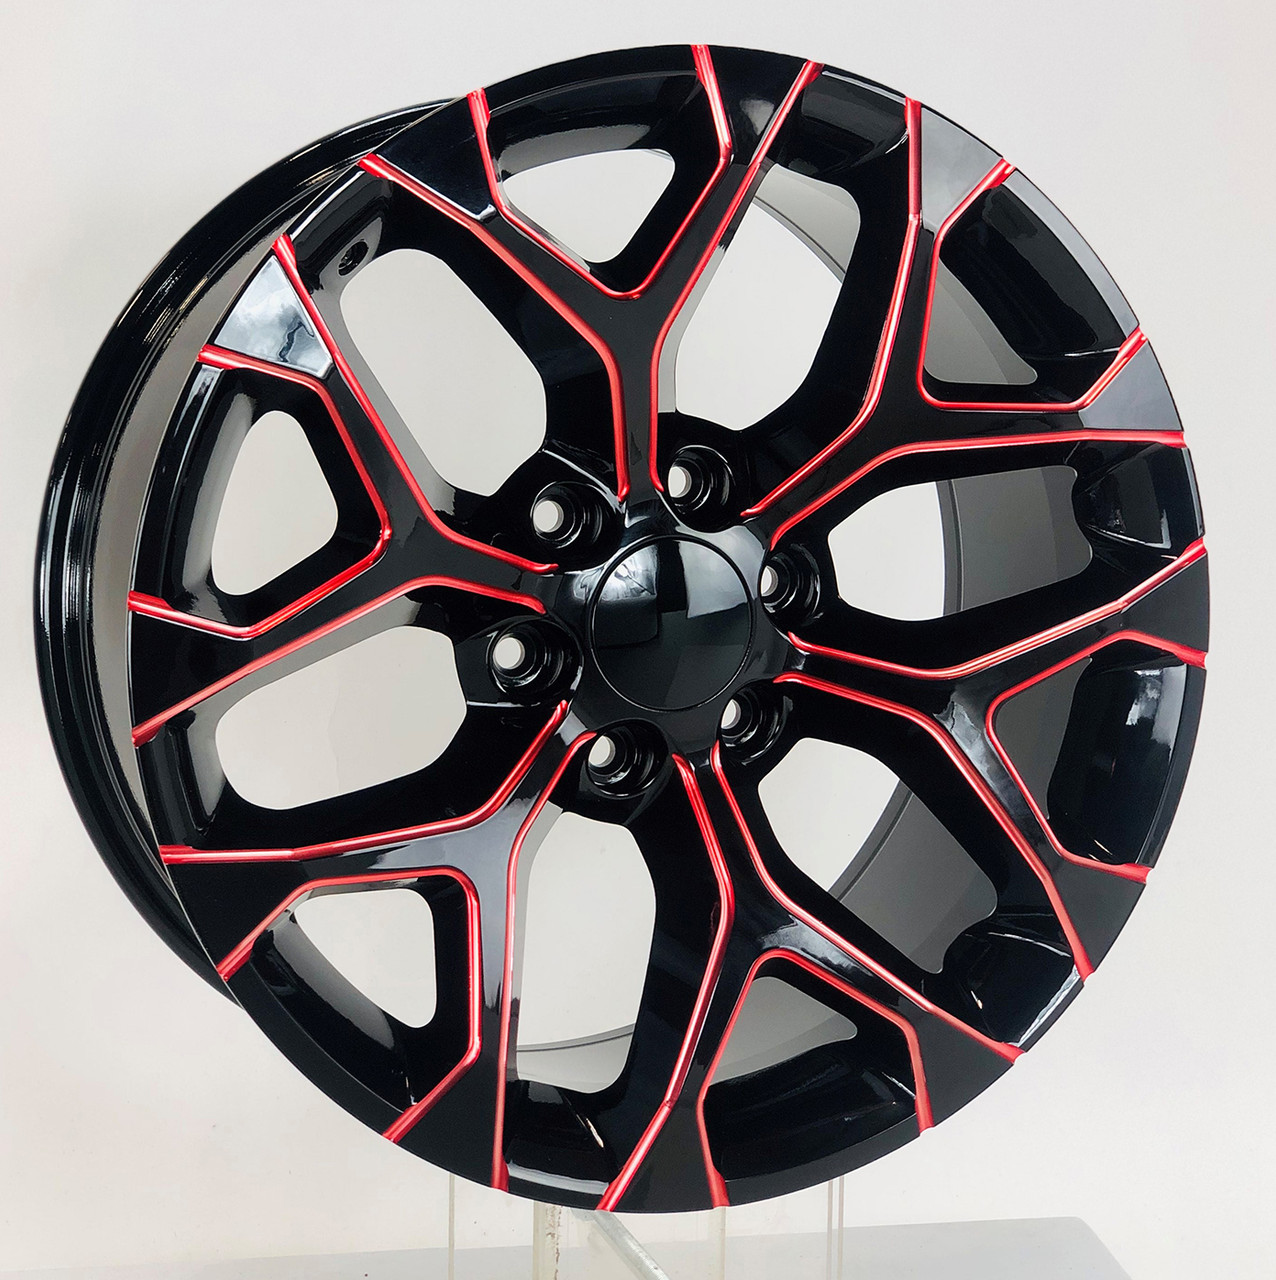 "Red Milled Edge Gloss Black 20"" Snowflake Wheels for Chevy Silverado, Tahoe, Suburban - New Set of 4"